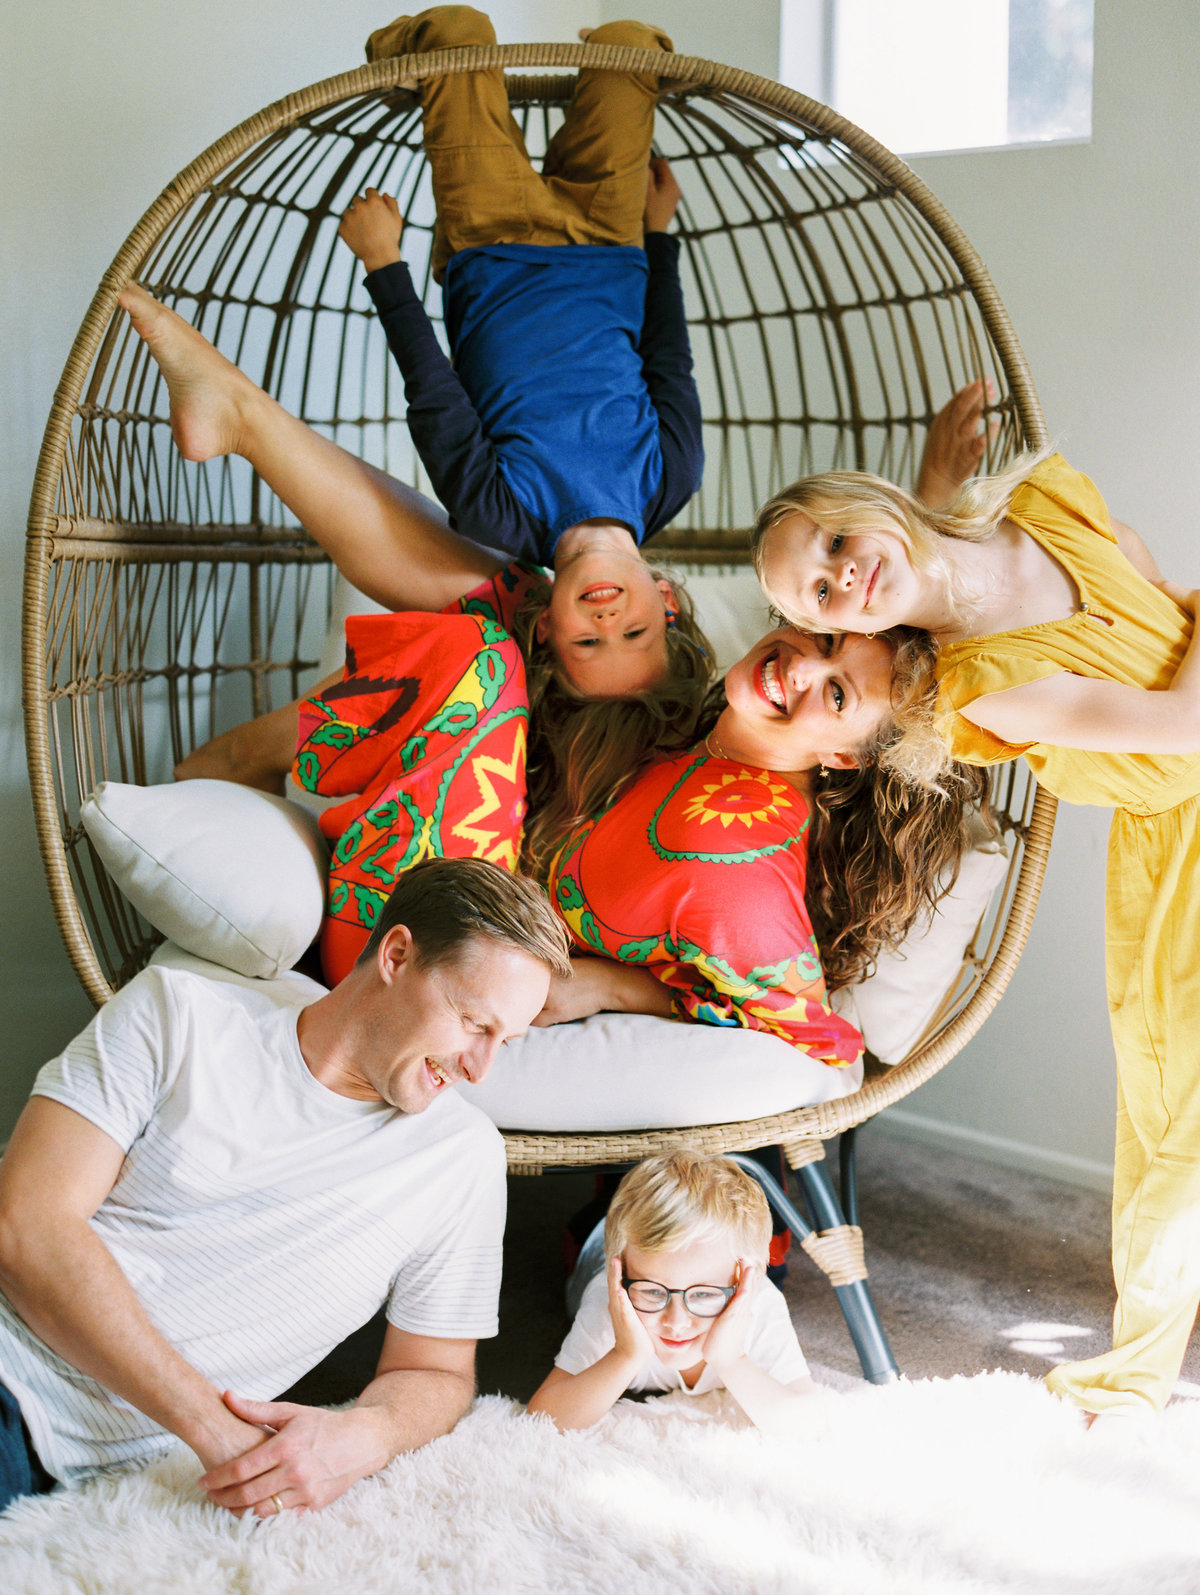 charleston-lifestyle-family-portrait-photographer-philip-casey-047